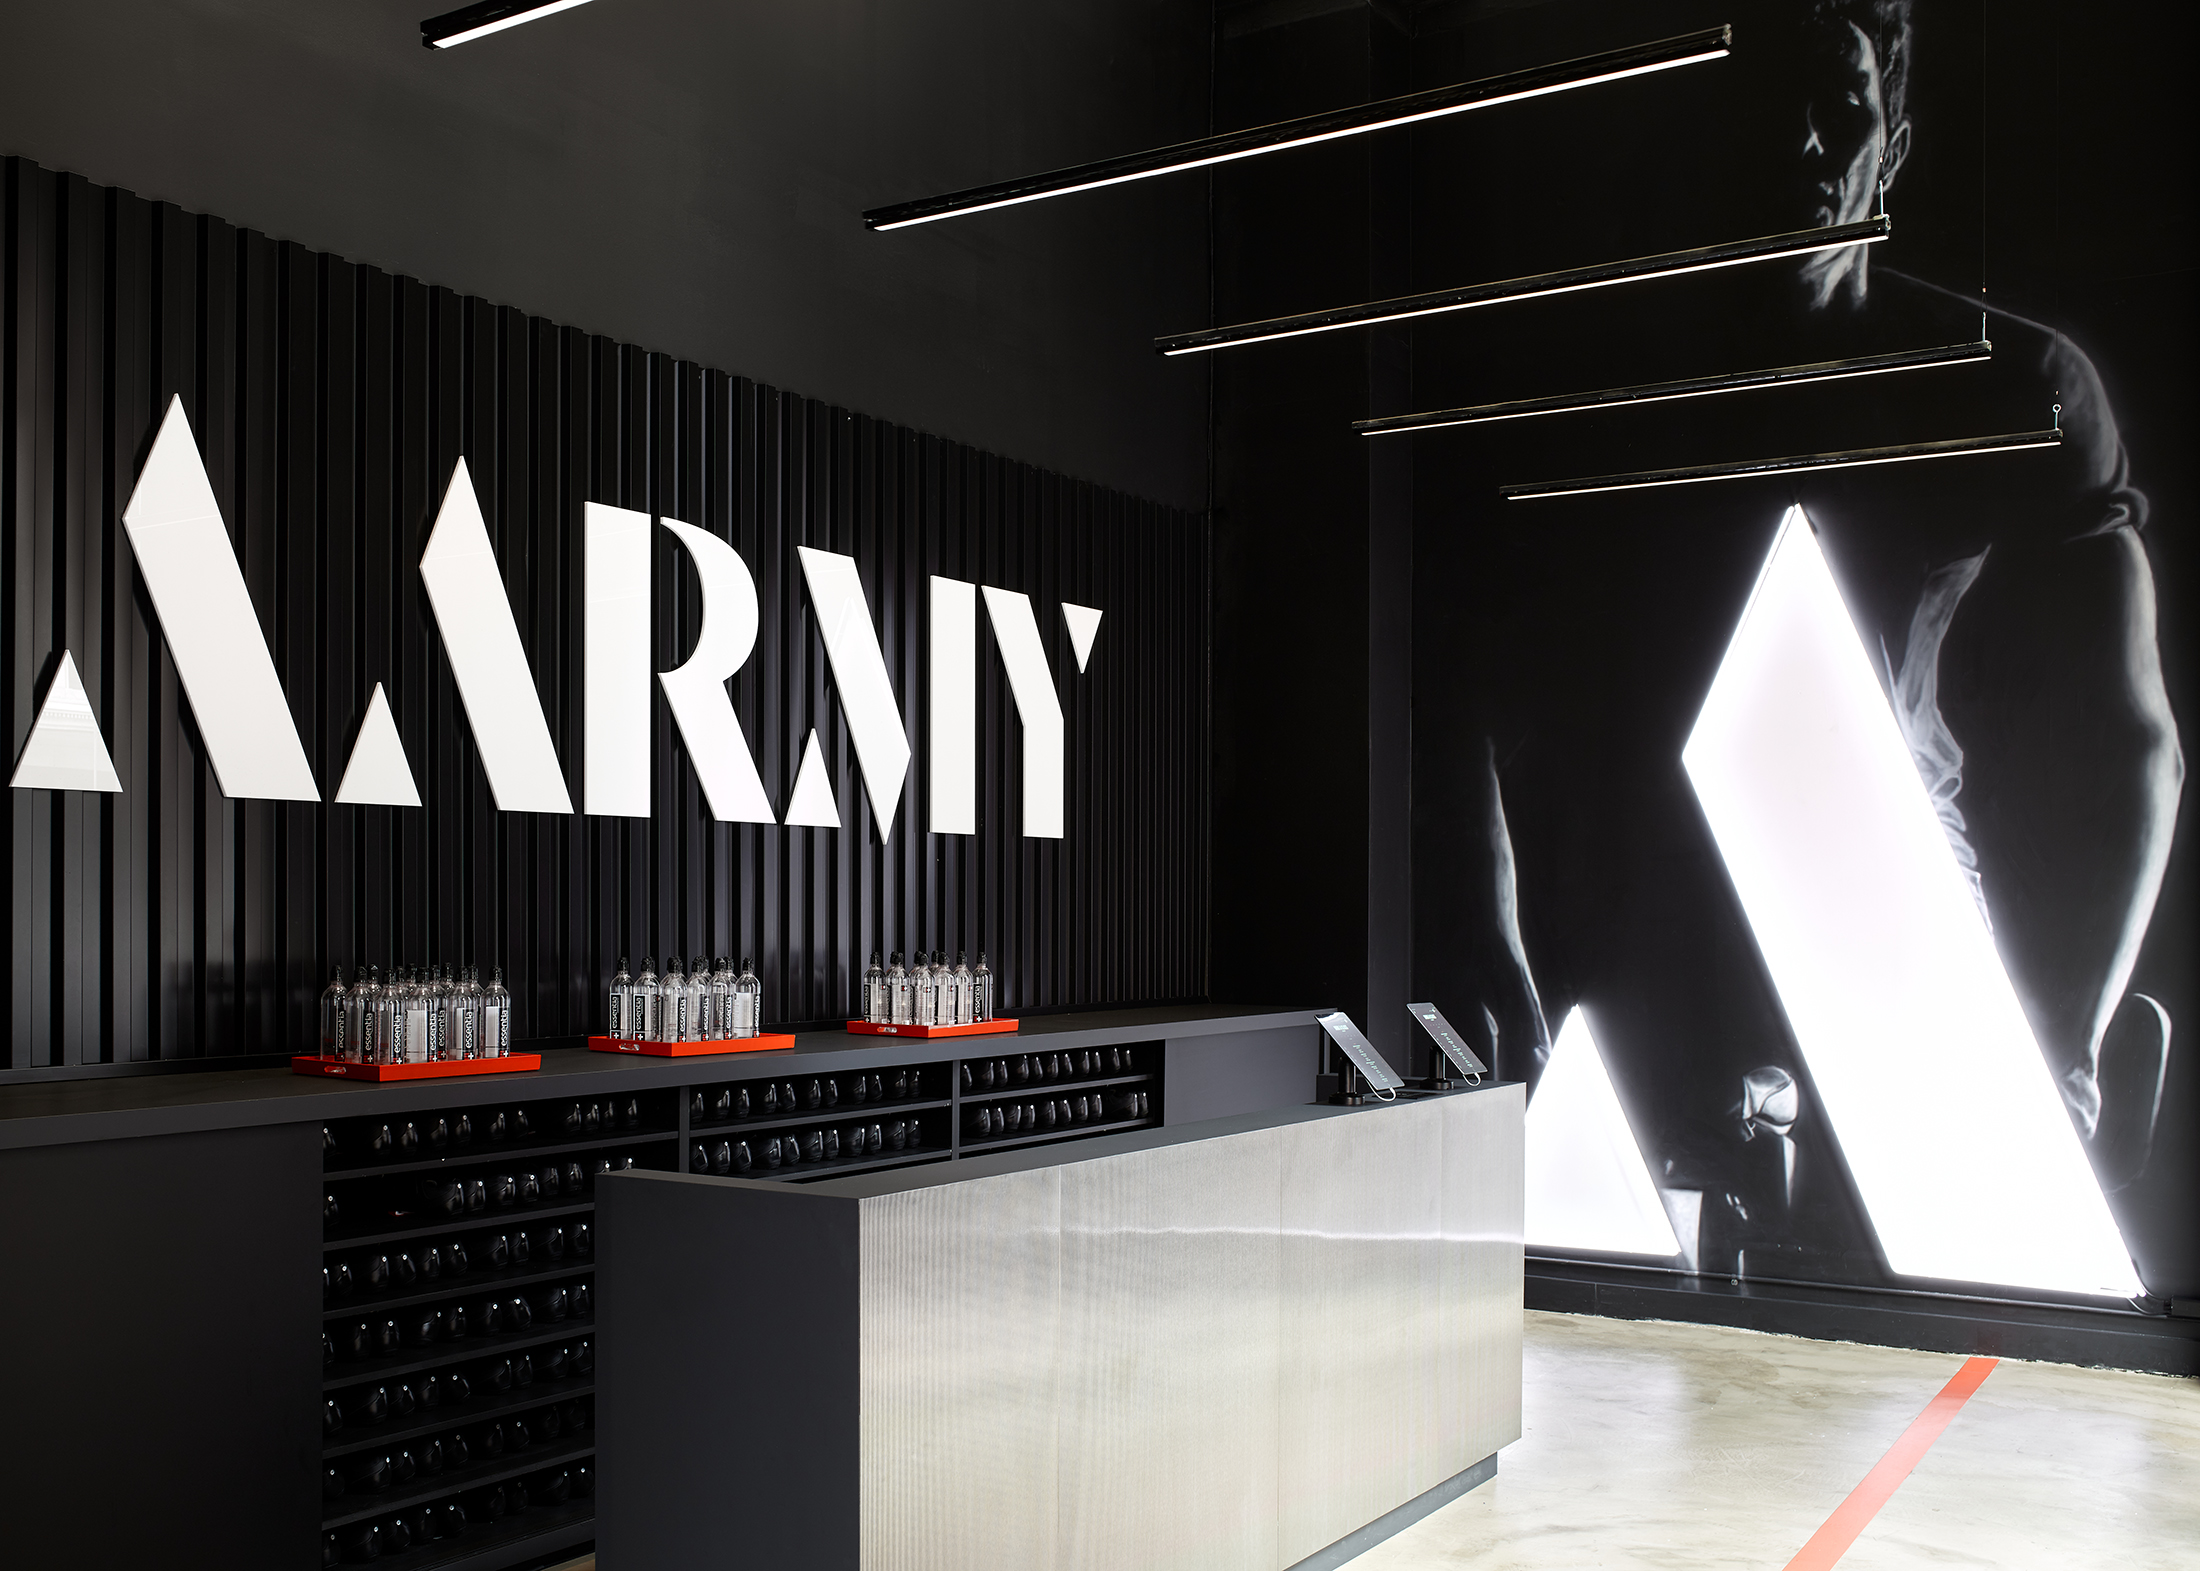 Trey Laird Launches new Fitness Brand AARMY